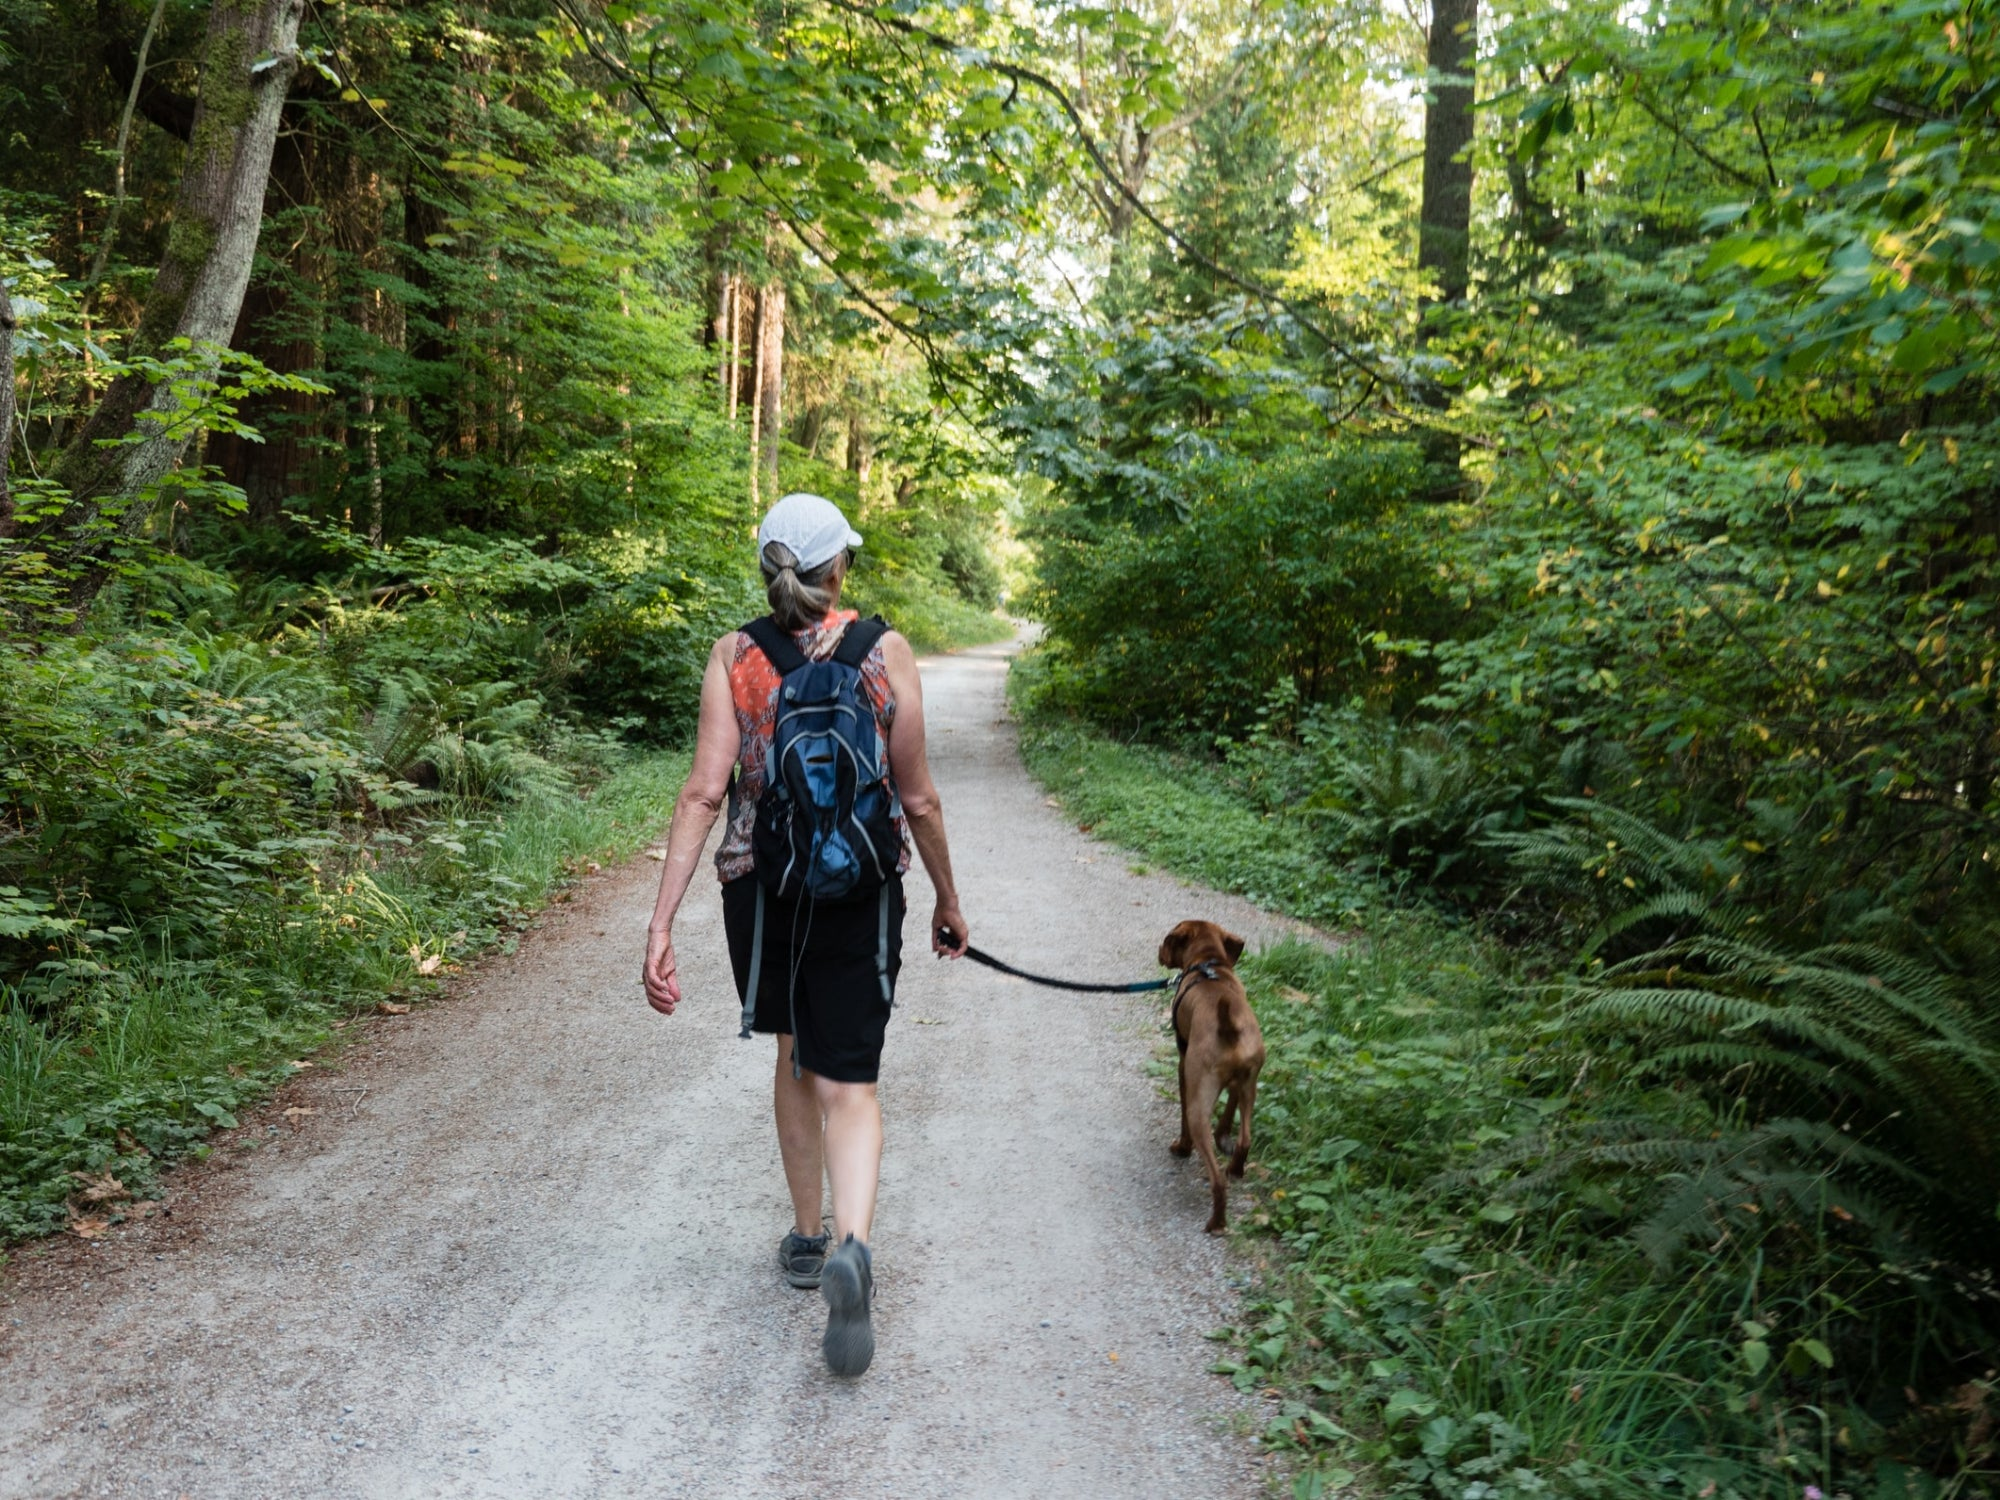 a person walking a dog along a trail in the forest